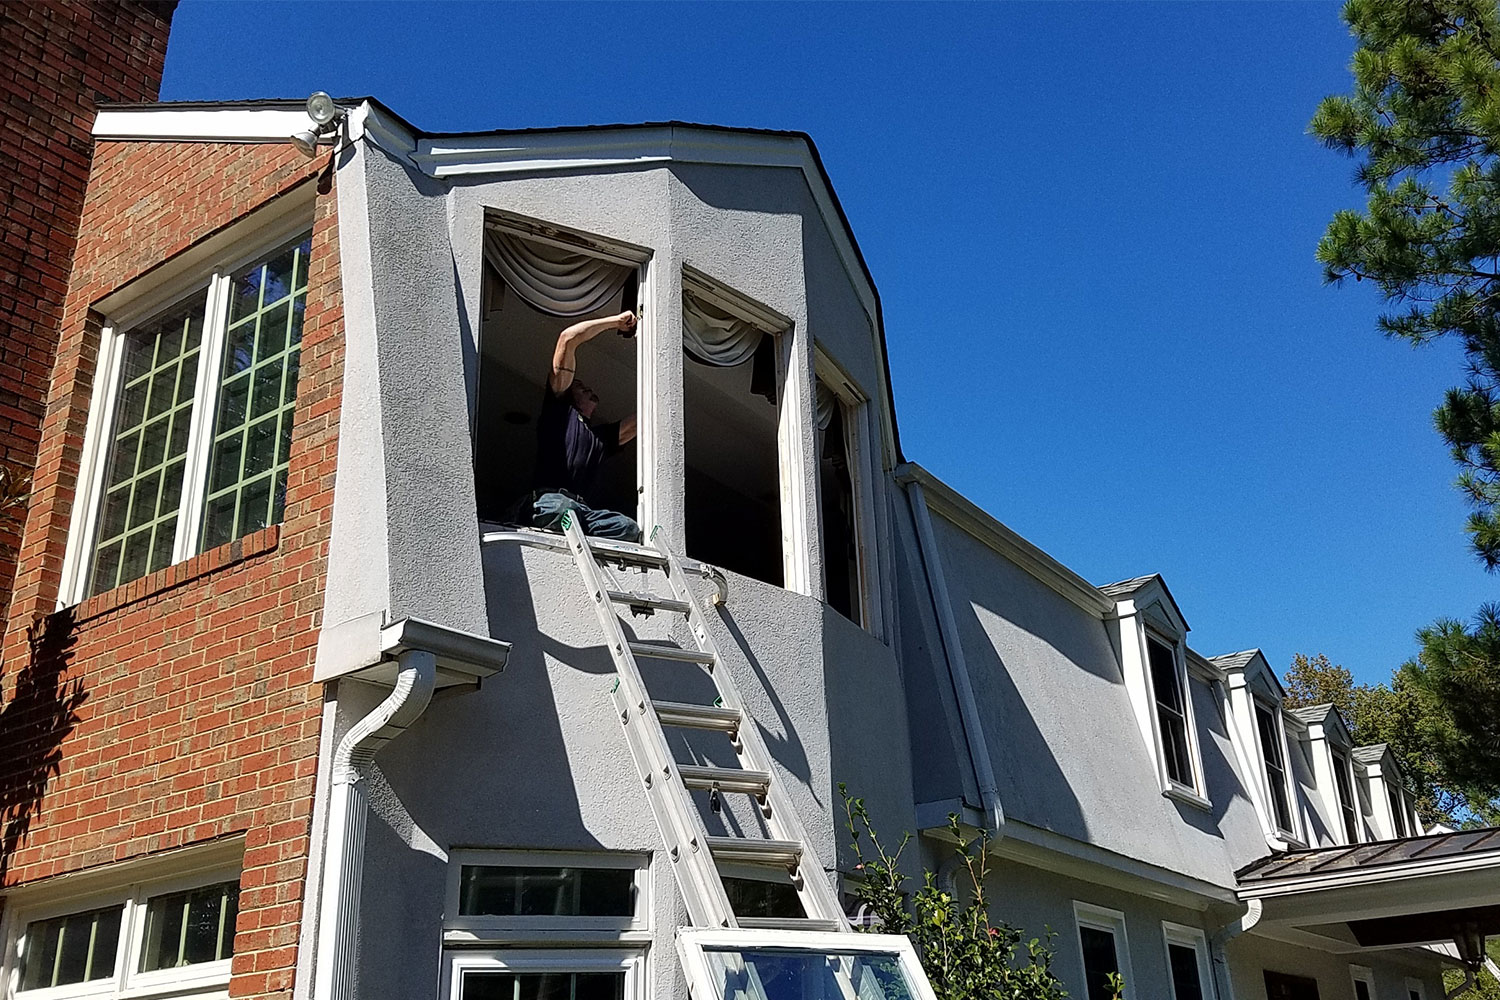 newton-conover window replacement services